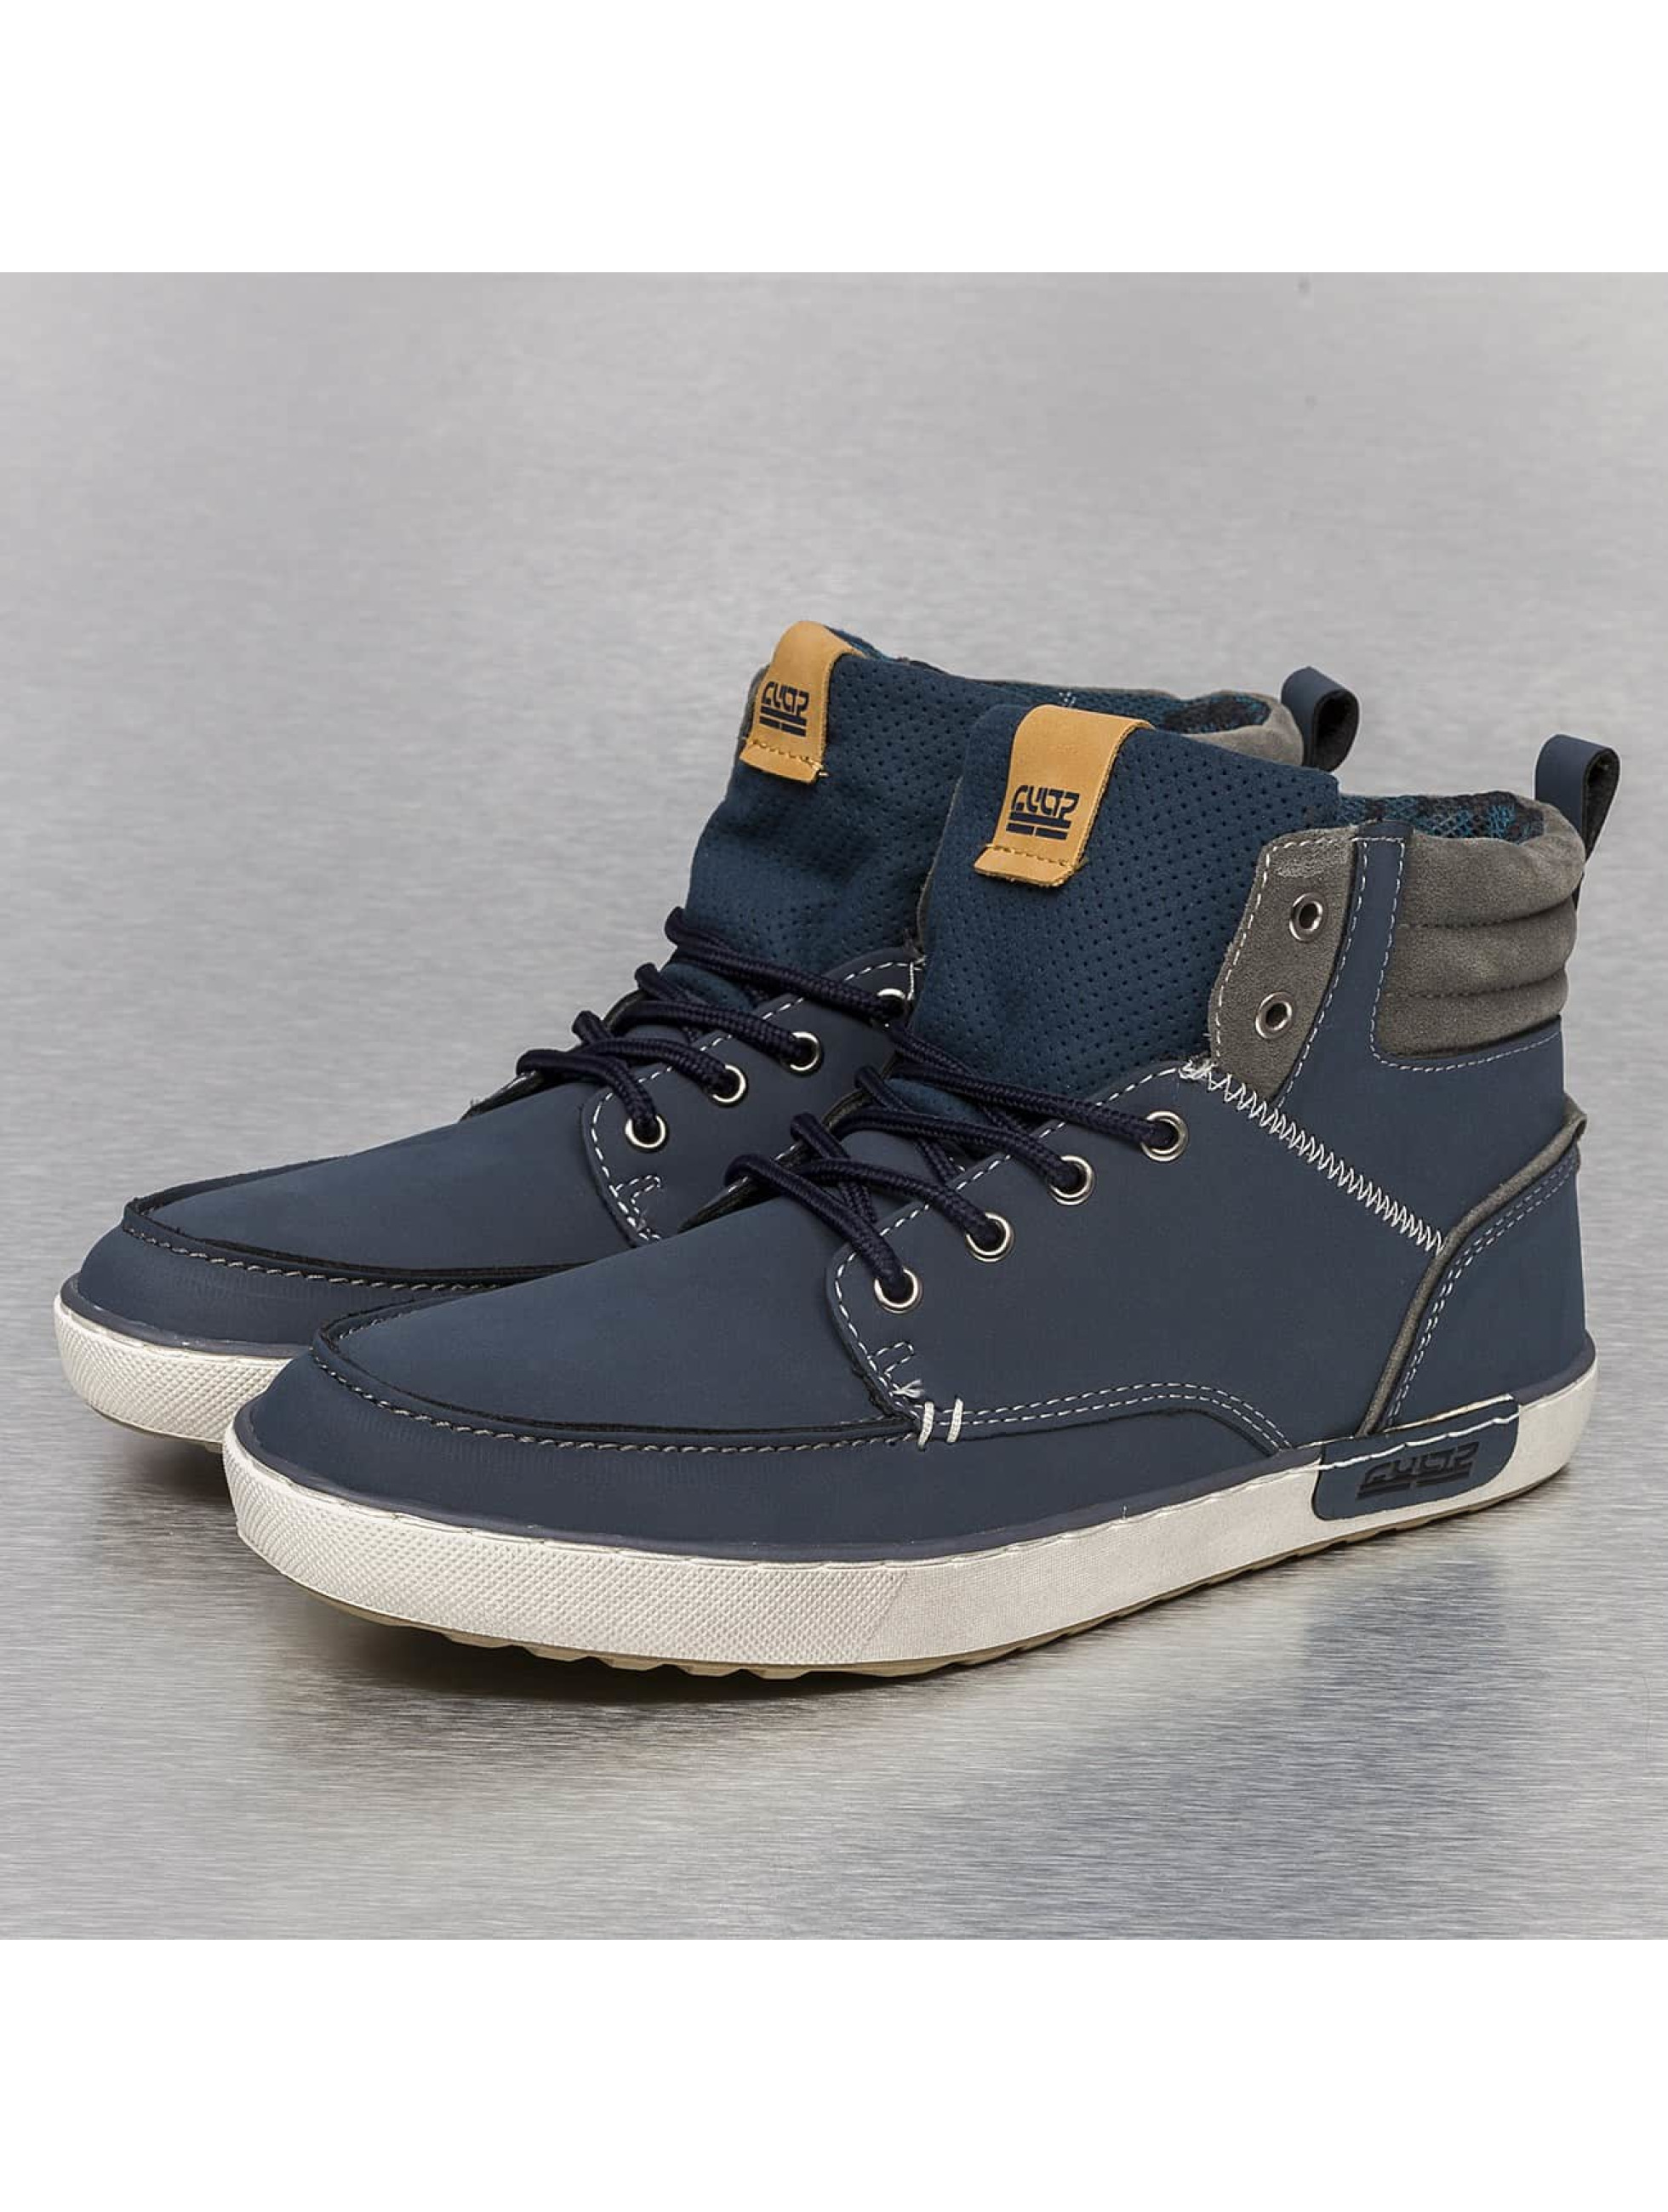 New York Style Sneakers Toronto blue